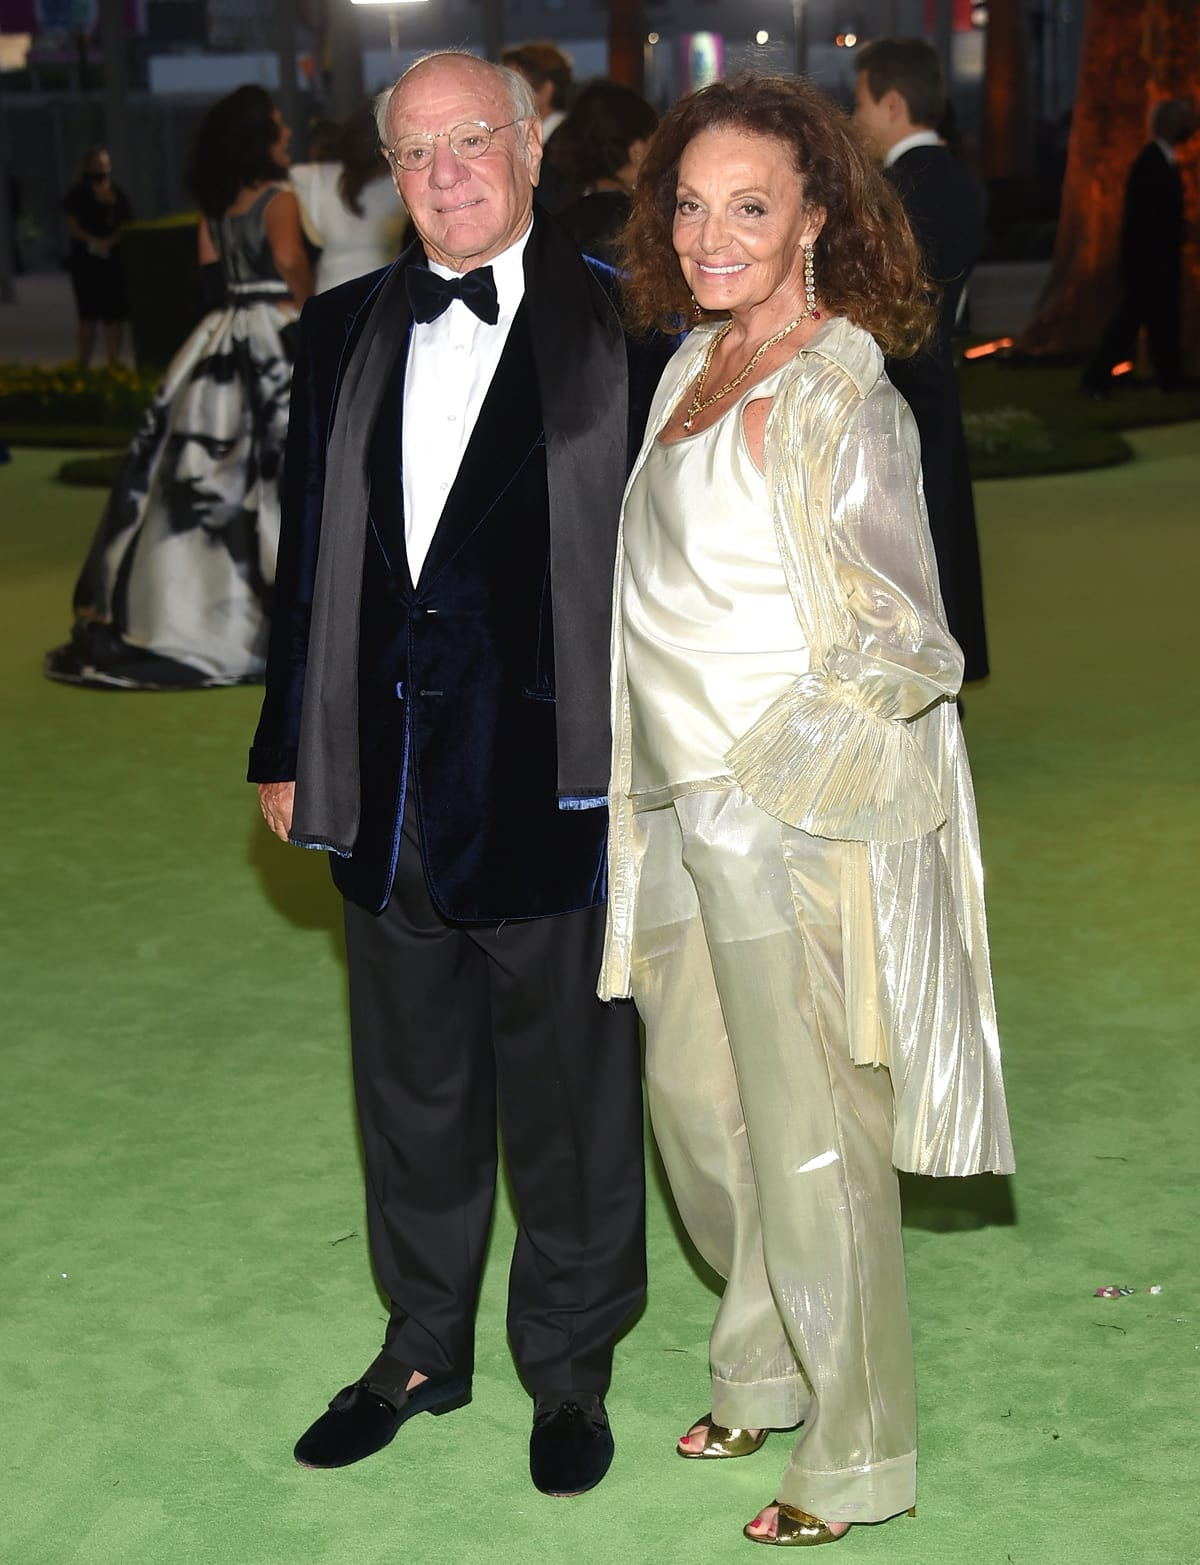 Fashion designer Diane von Fürstenberg and her husband, American businessman Barry Charles Diller, attend The Academy Museum of Motion Pictures Opening Gala